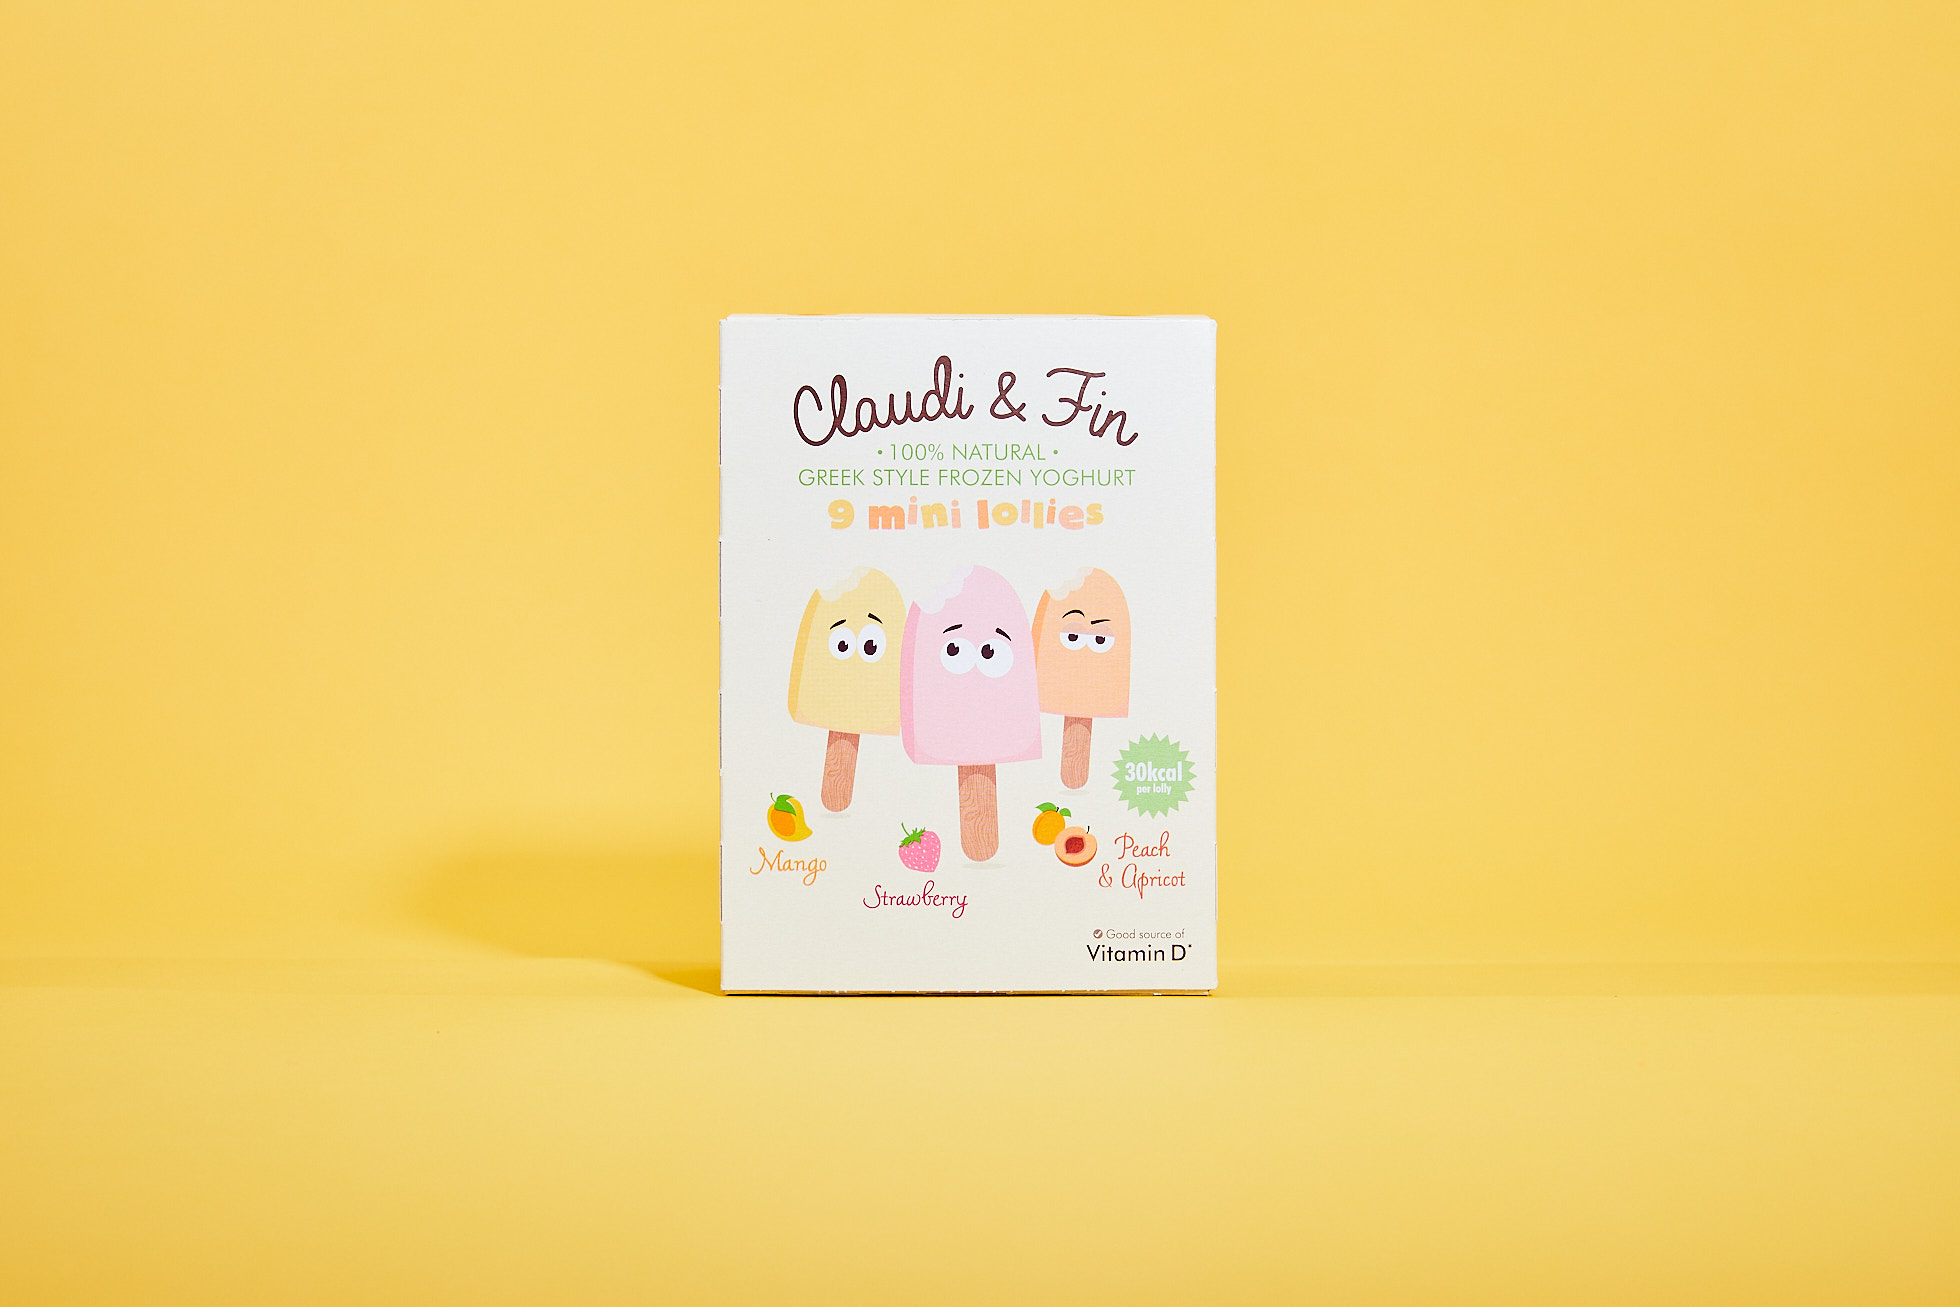 Box of Claudi and Fin ice lollies against a yellow background